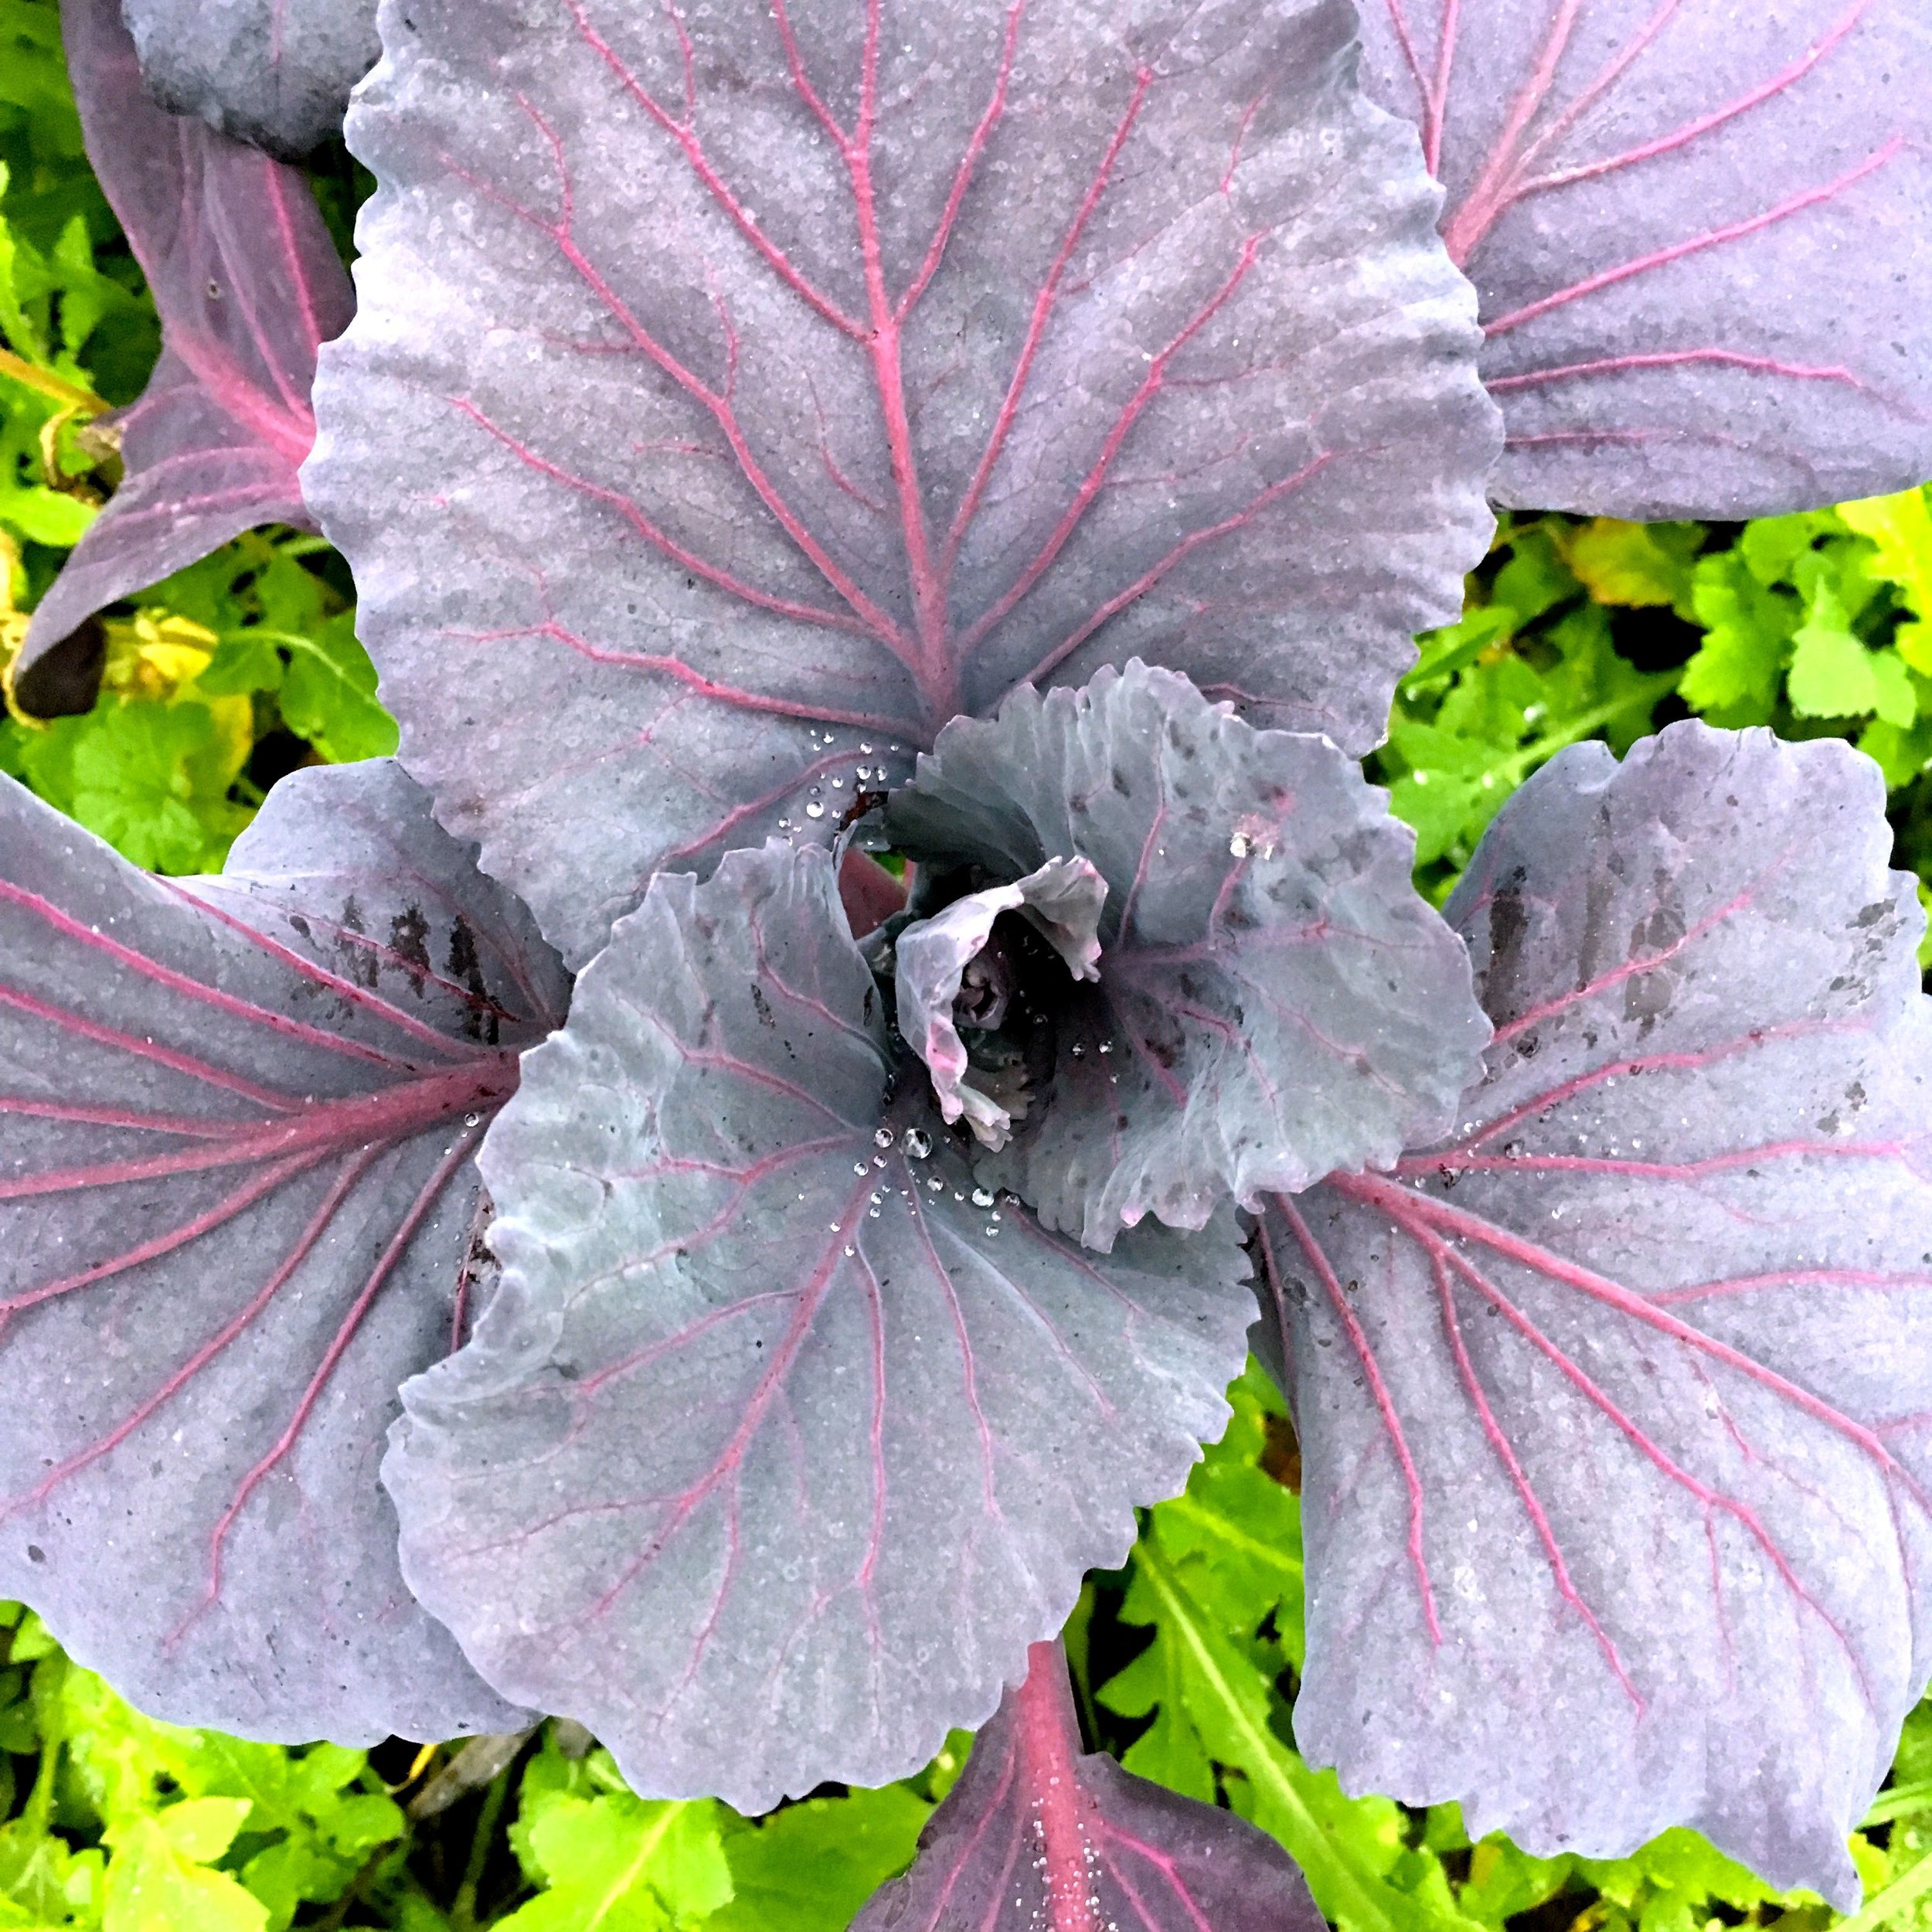 dramatic red cabbages are coming along well, just ignore the weeds in the background!